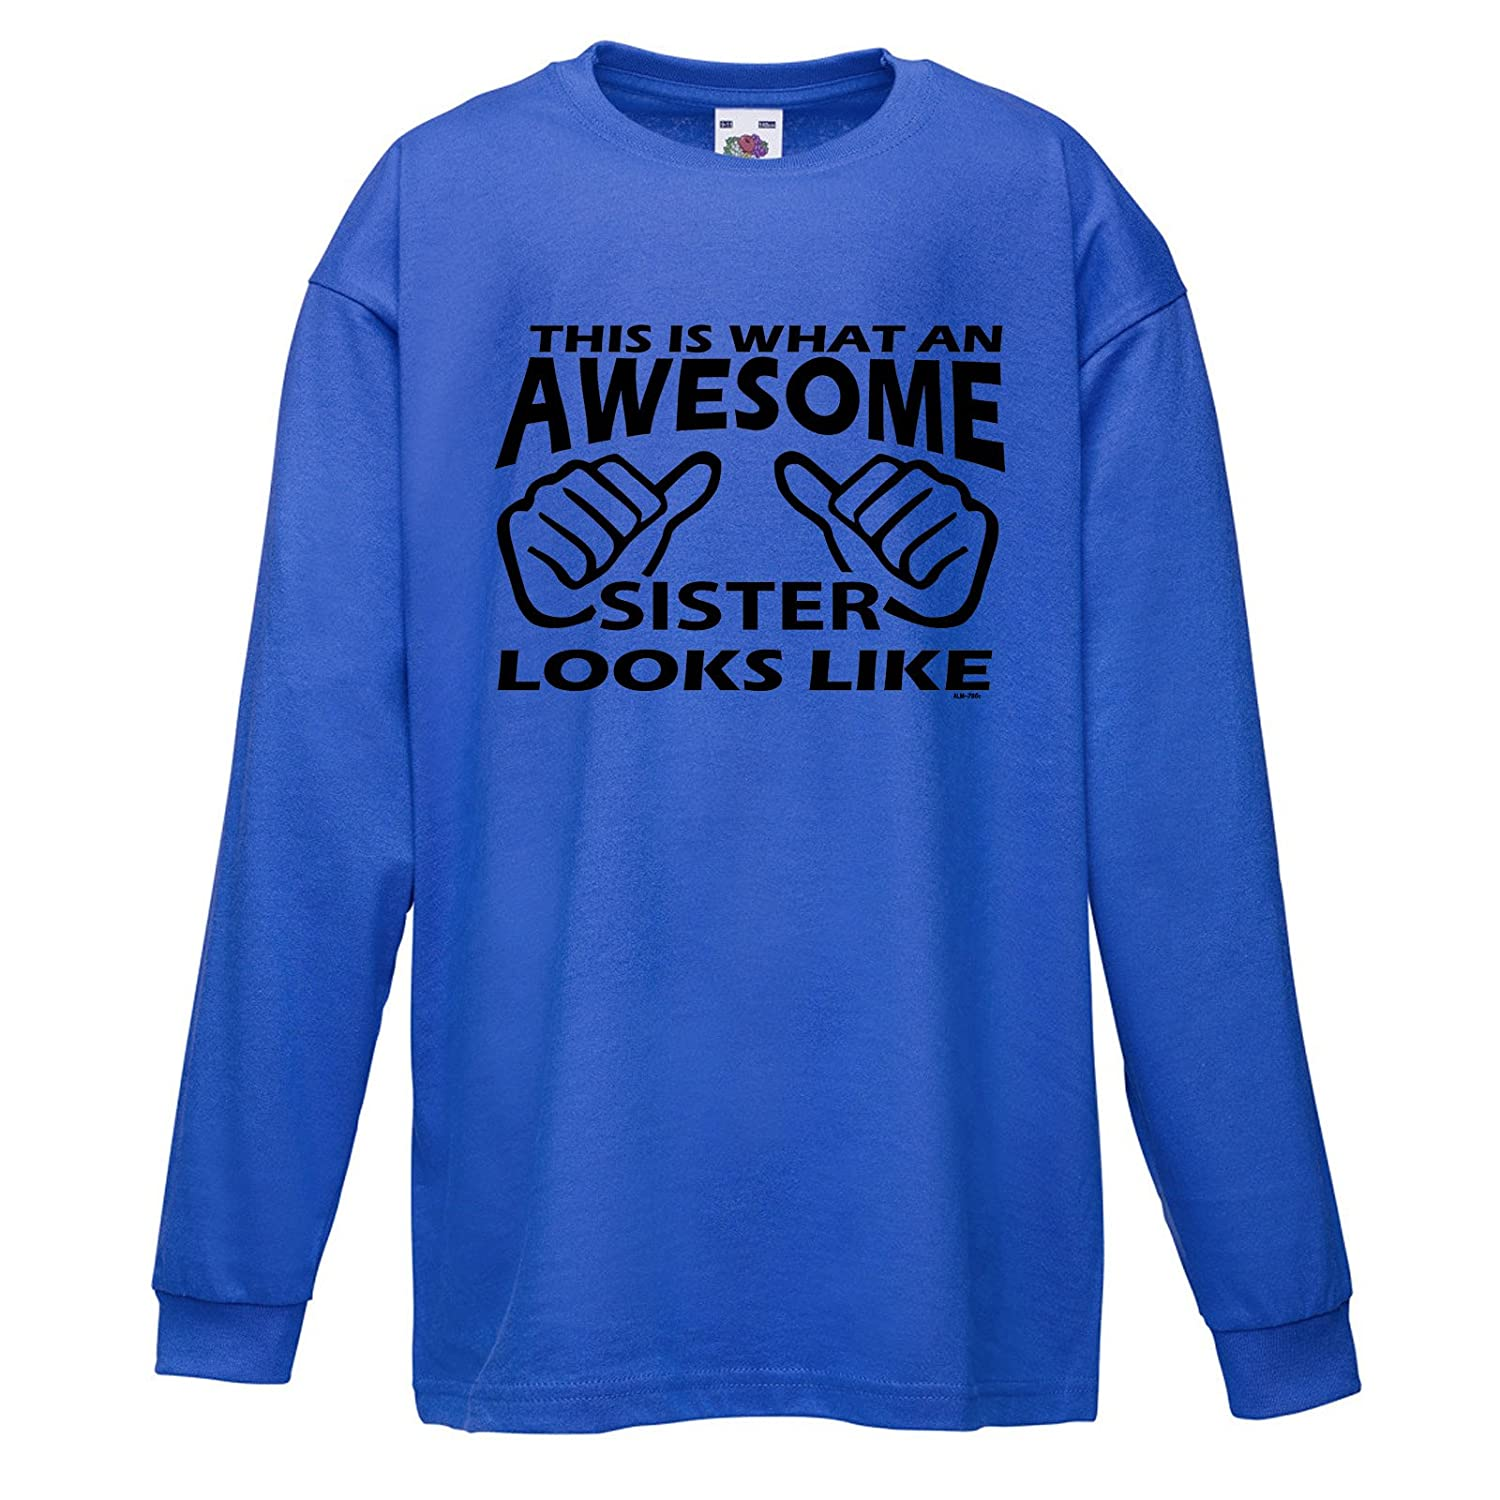 StarliteFunnyShirts Kinder t-Shirt Awesome Sister lustige Shirts Fun ...